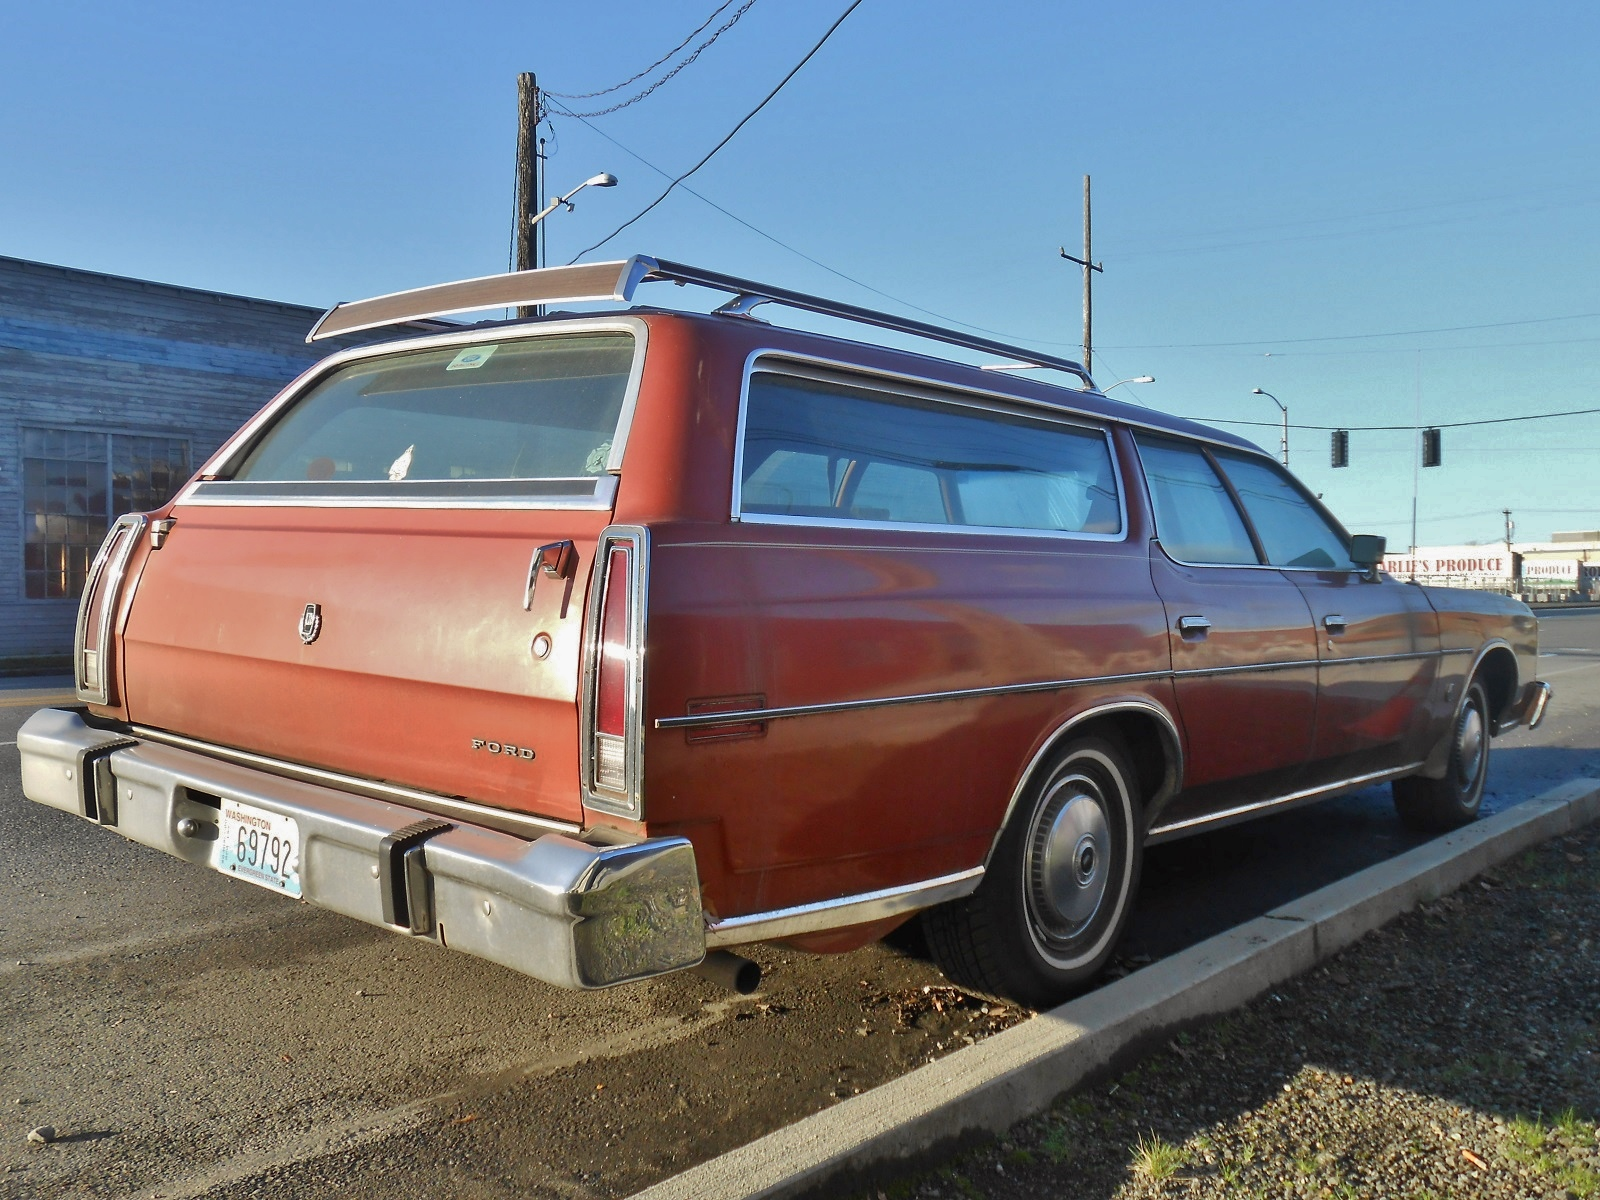 Seattle 39 s parked cars 1973 ford ltd wagon